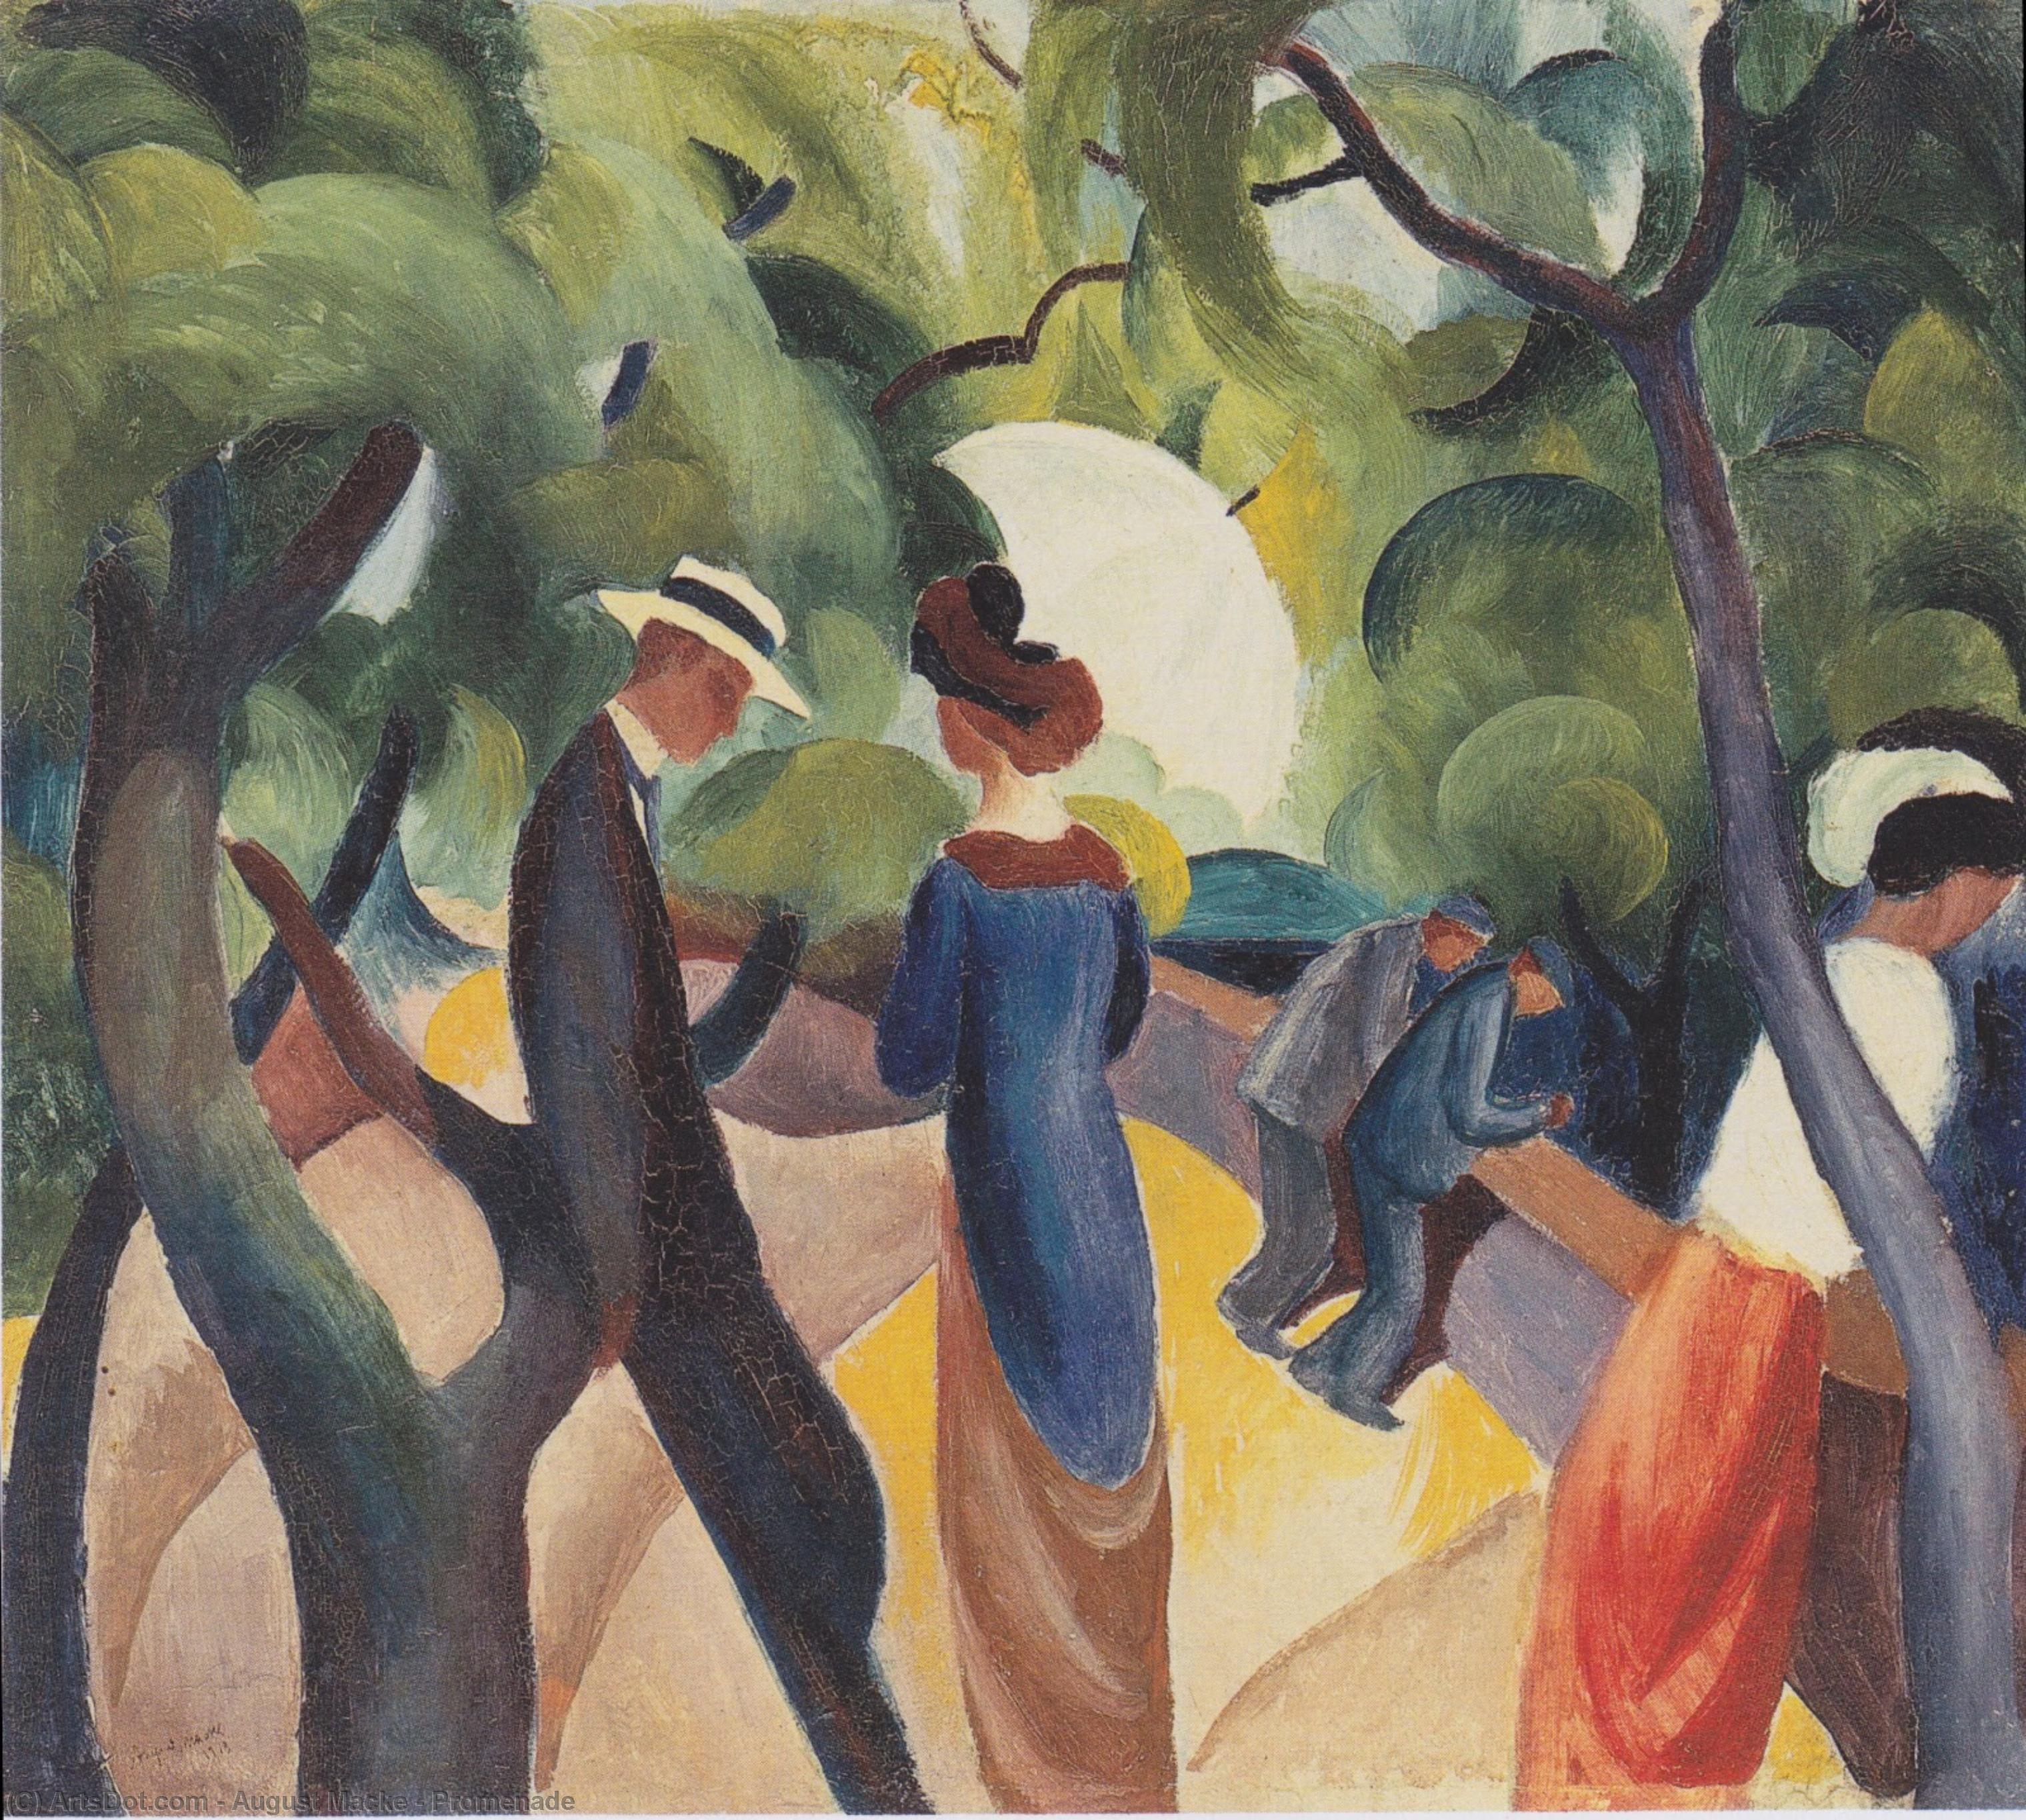 Wikioo.org - The Encyclopedia of Fine Arts - Painting, Artwork by August Macke - Promenade